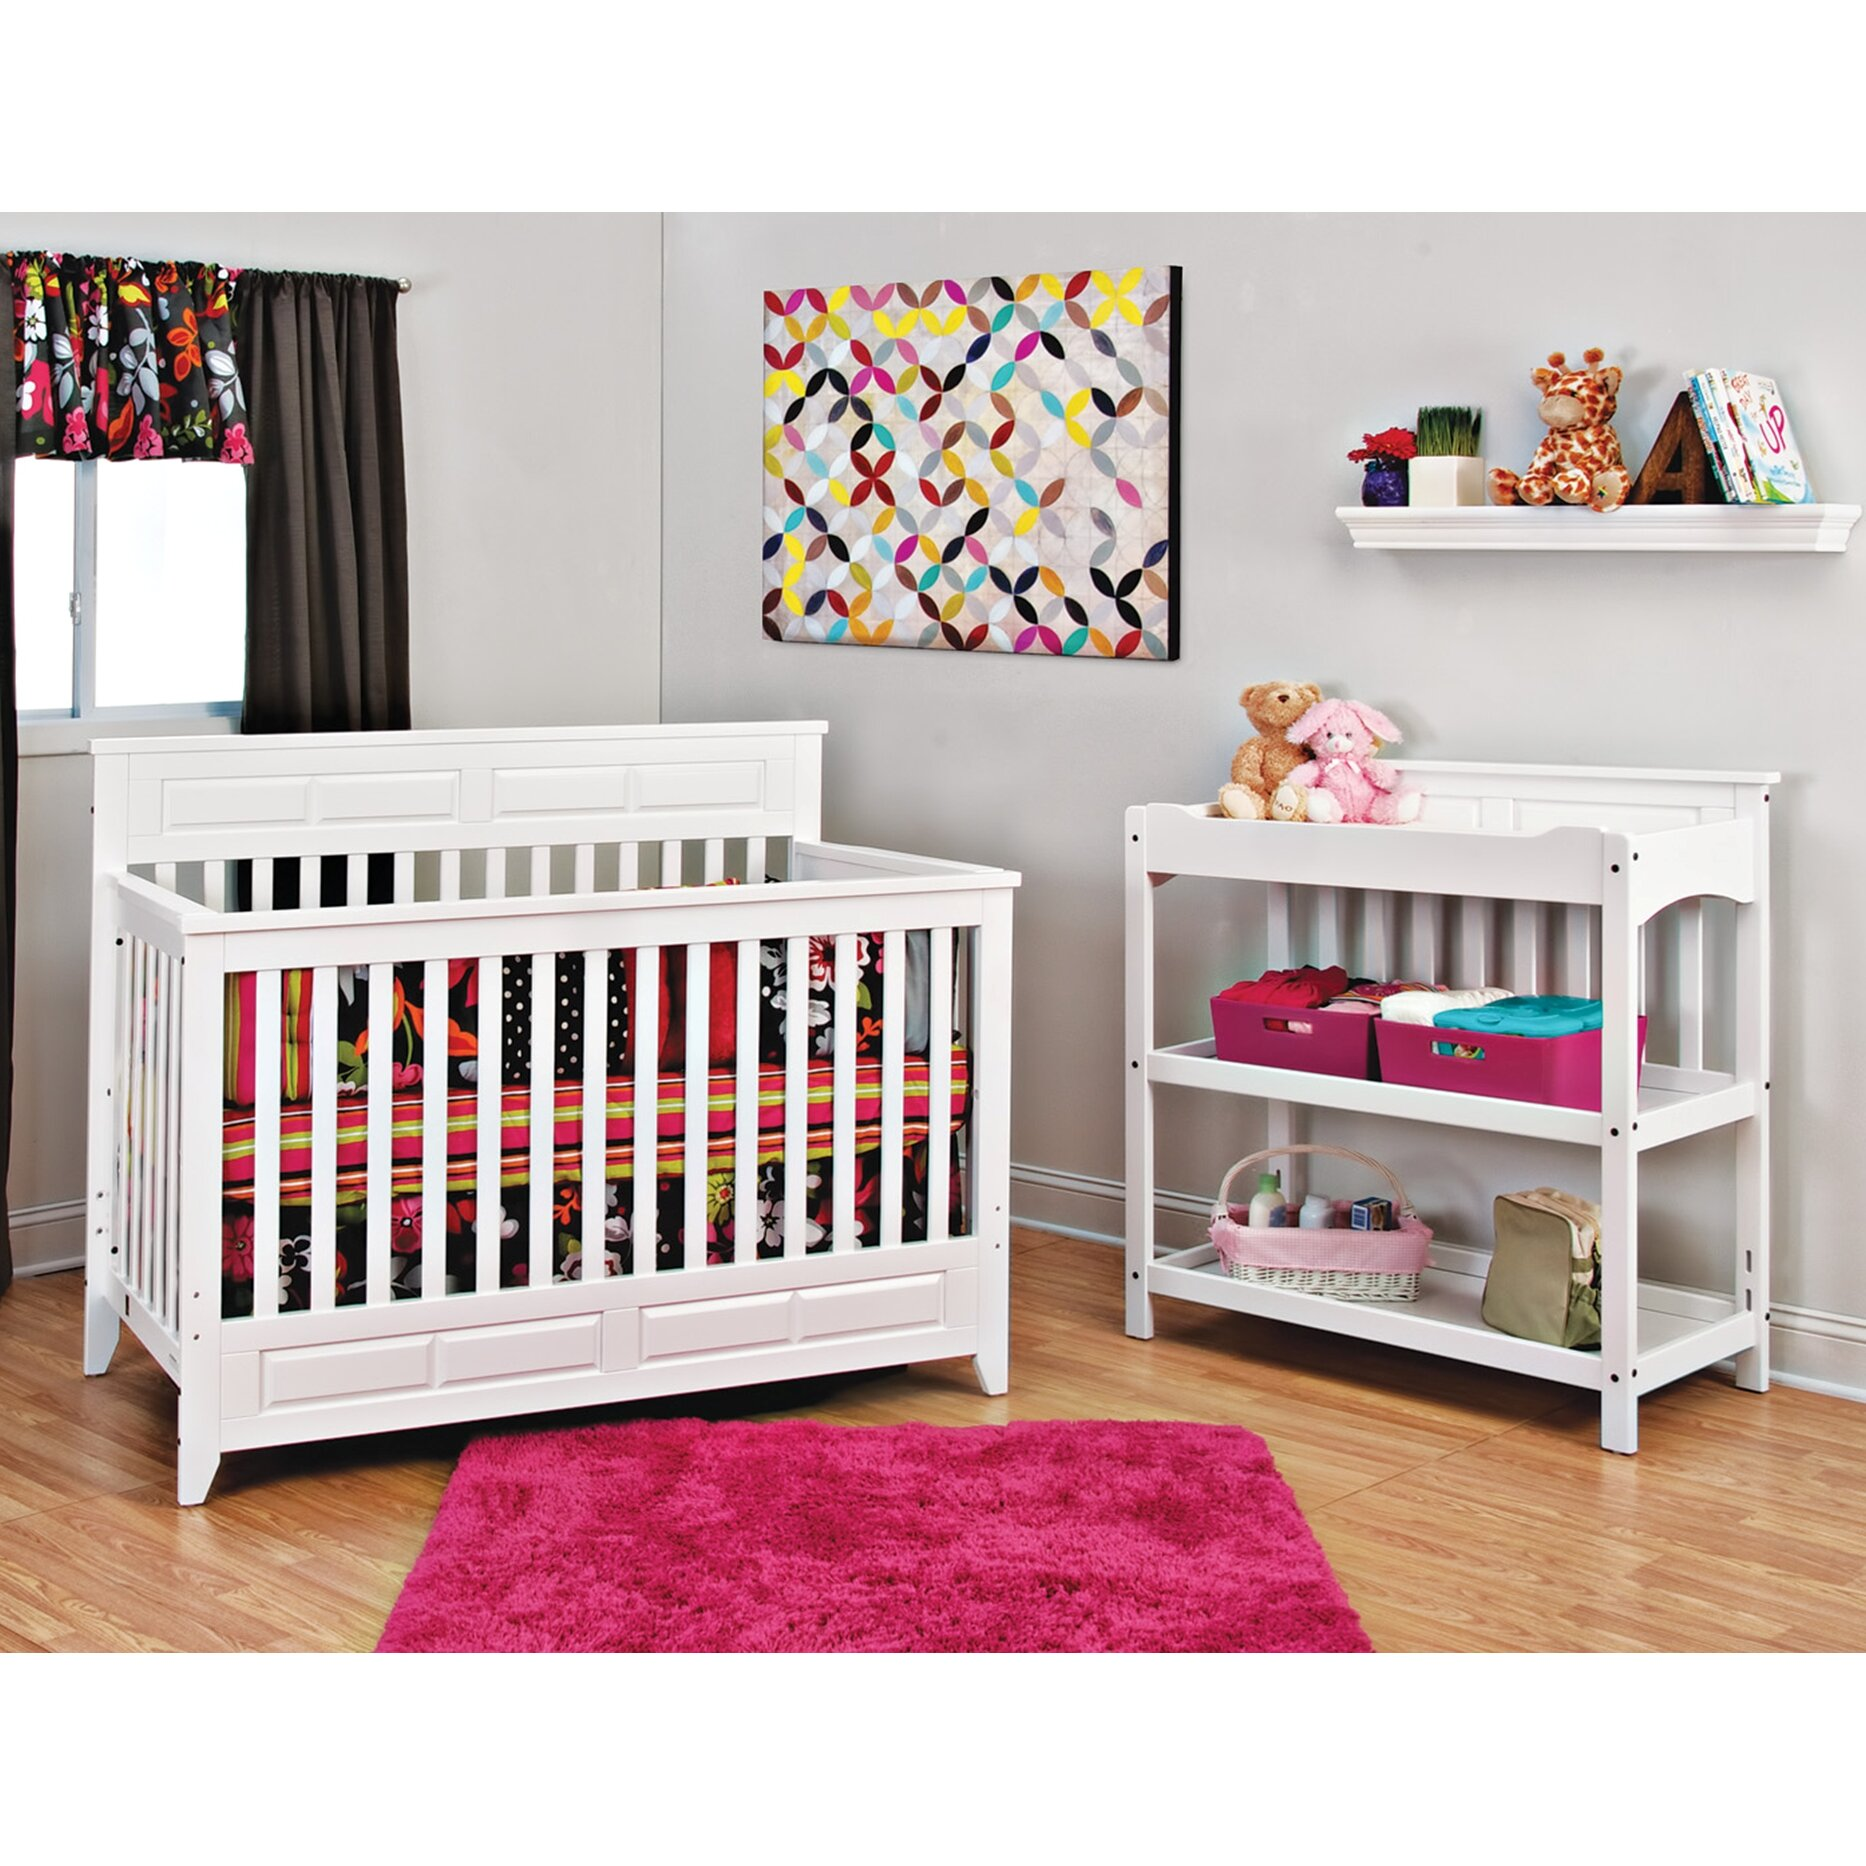 28 4 in 1 convertible crib sets dream on me jayden 4 in 1 m